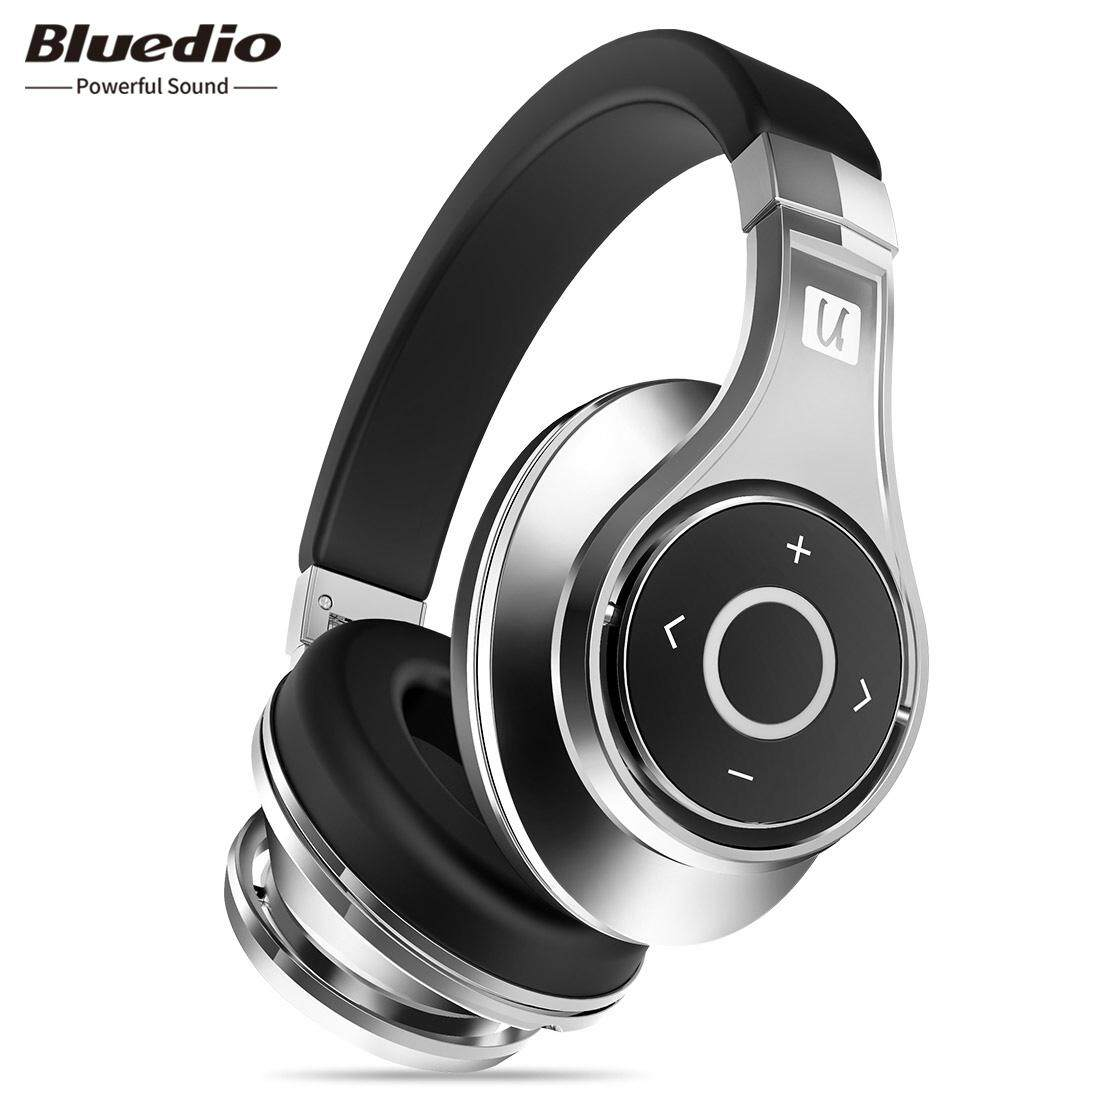 Bluedio UFO Headphone Bluetooth Headset Nirkabel dengan MIC (Hitam/Perak)